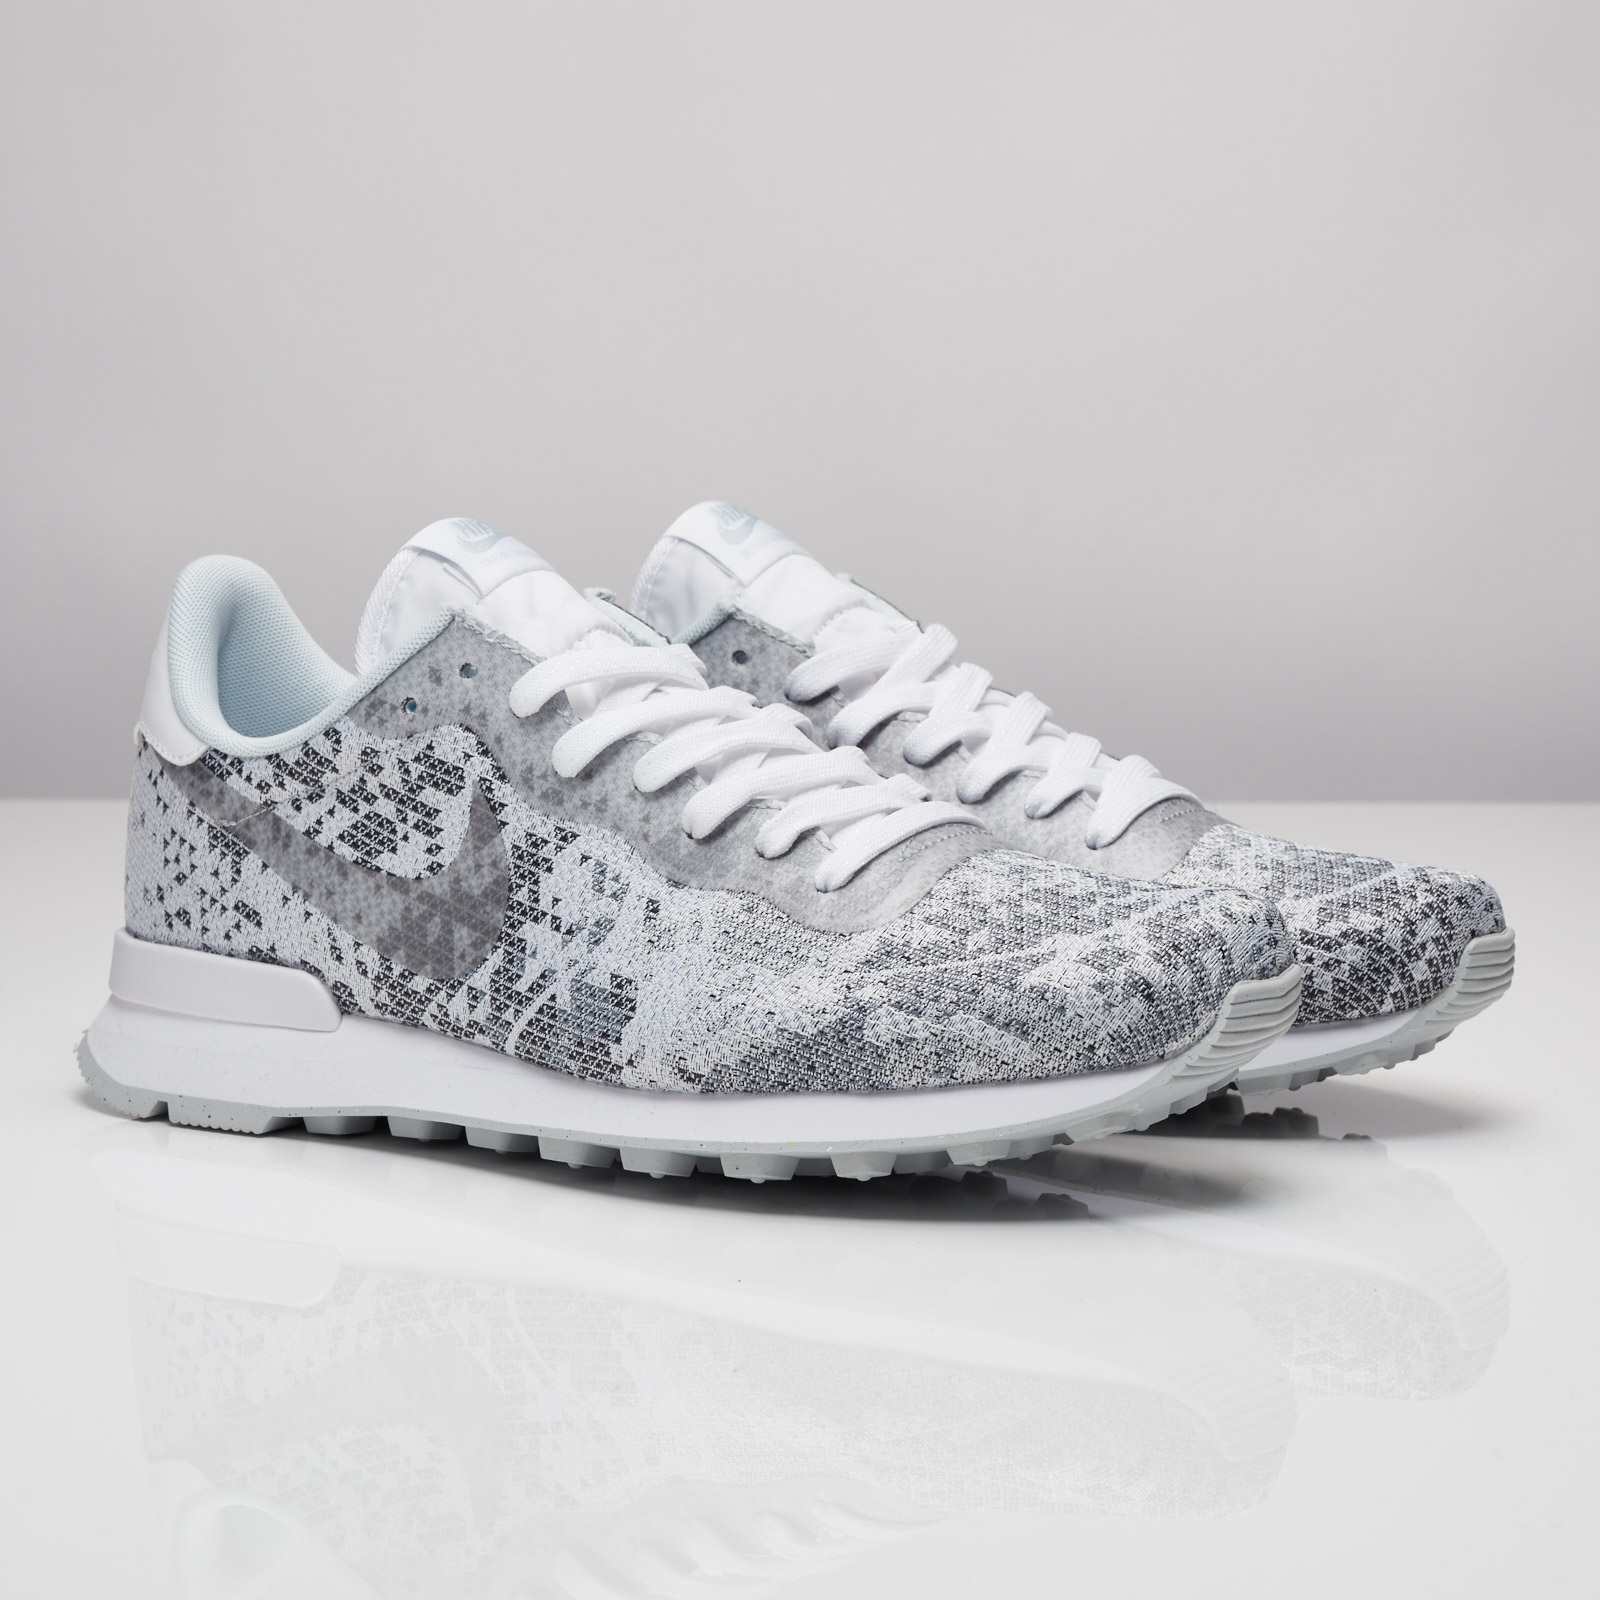 Nike Internationalist Jacquard QS - 839233-100 - Sneakersnstuff ... 4eab79043ab2